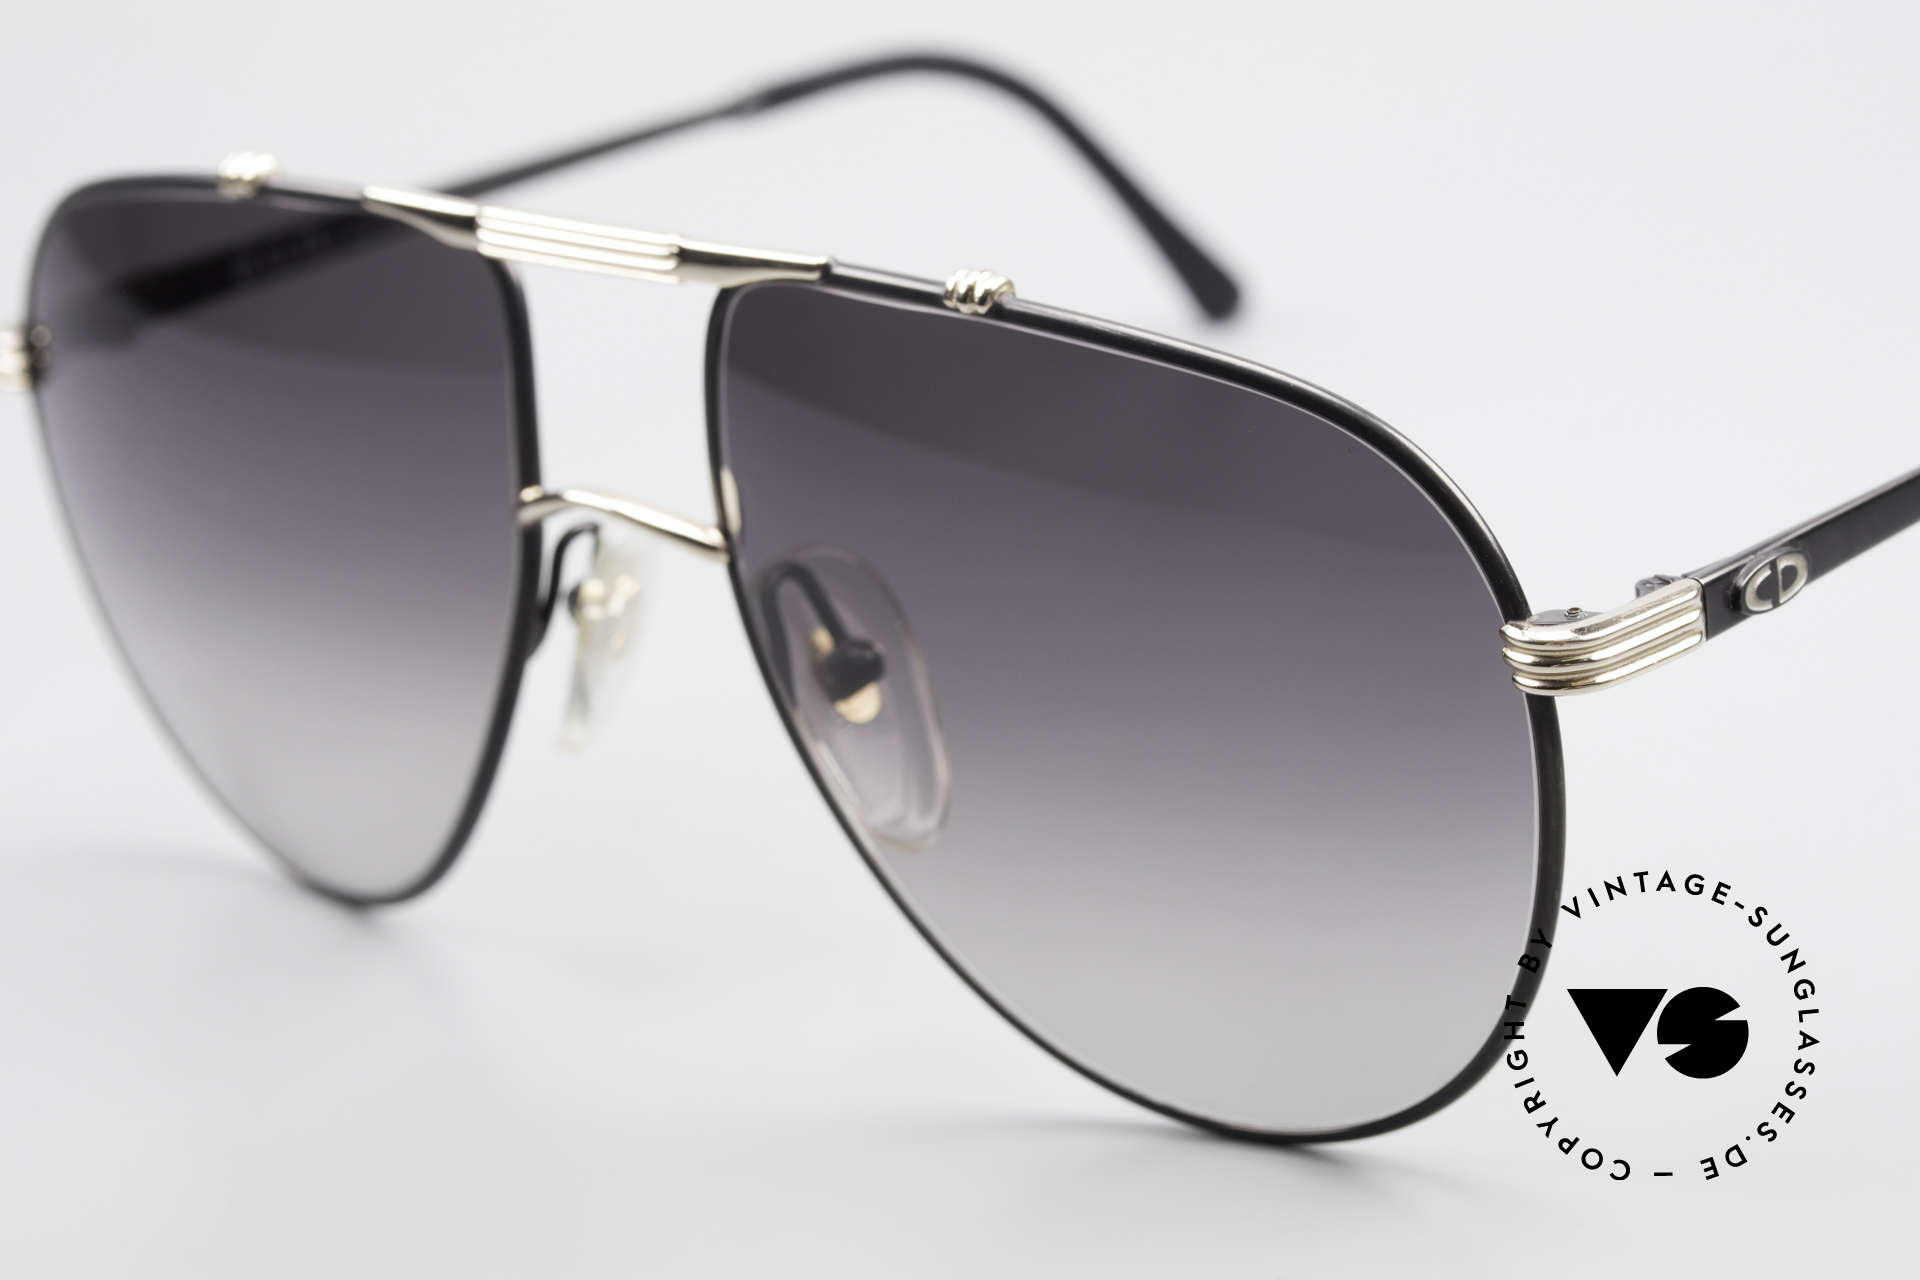 Christian Dior 2248 80's Aviator Large Sunglasses, new old stock (like all our rare vintage C. Dior shades), Made for Men